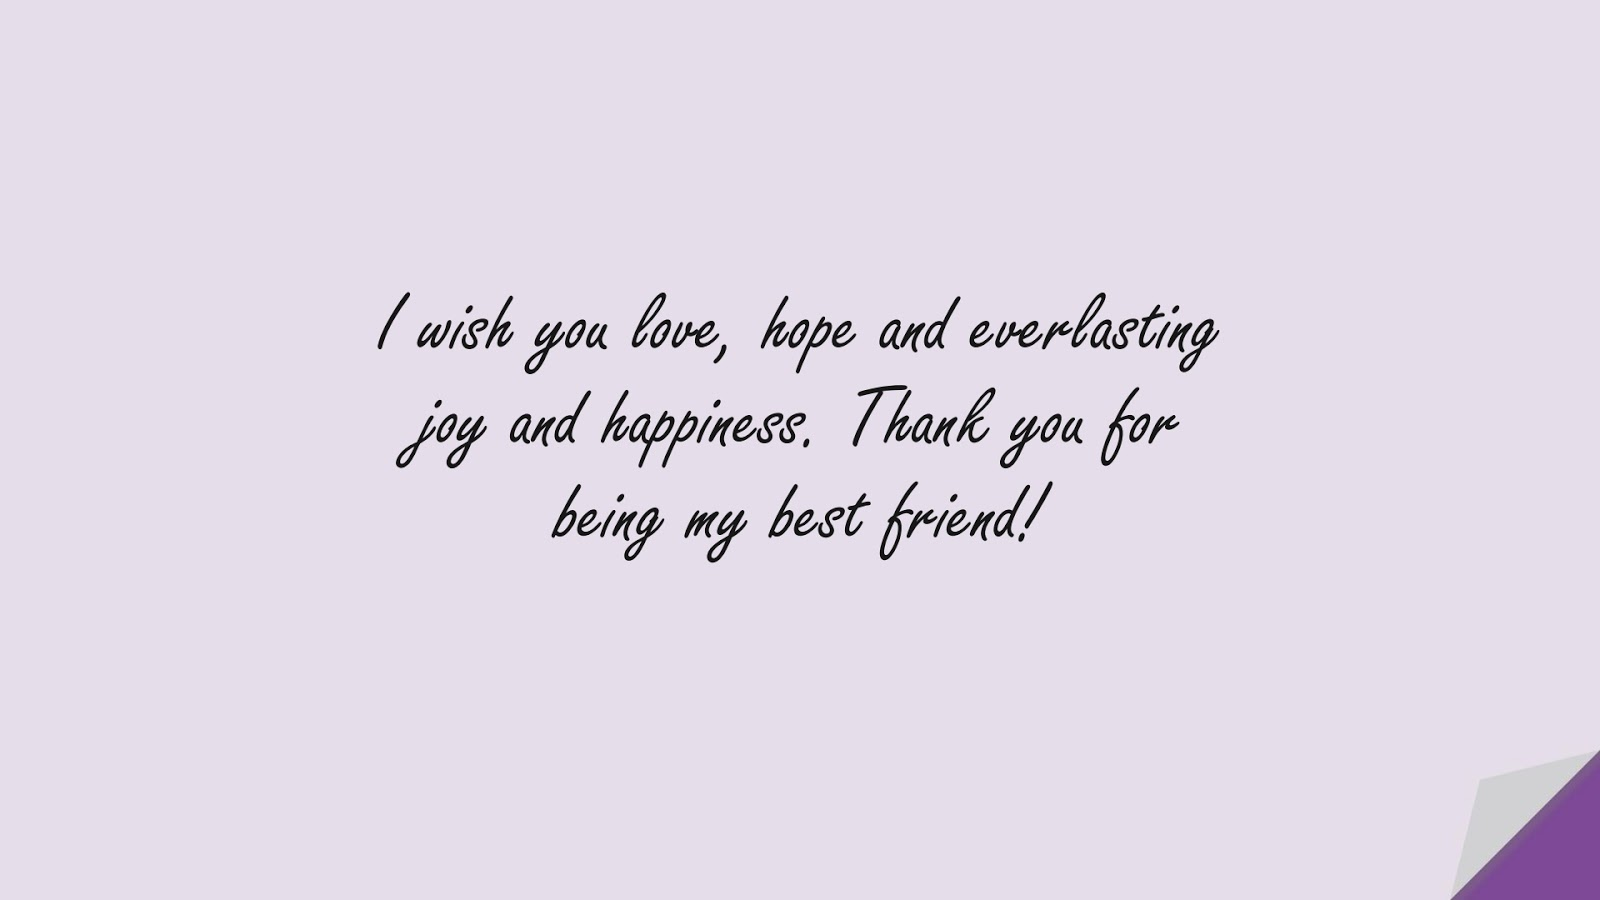 I wish you love, hope and everlasting joy and happiness. Thank you for being my best friend!FALSE